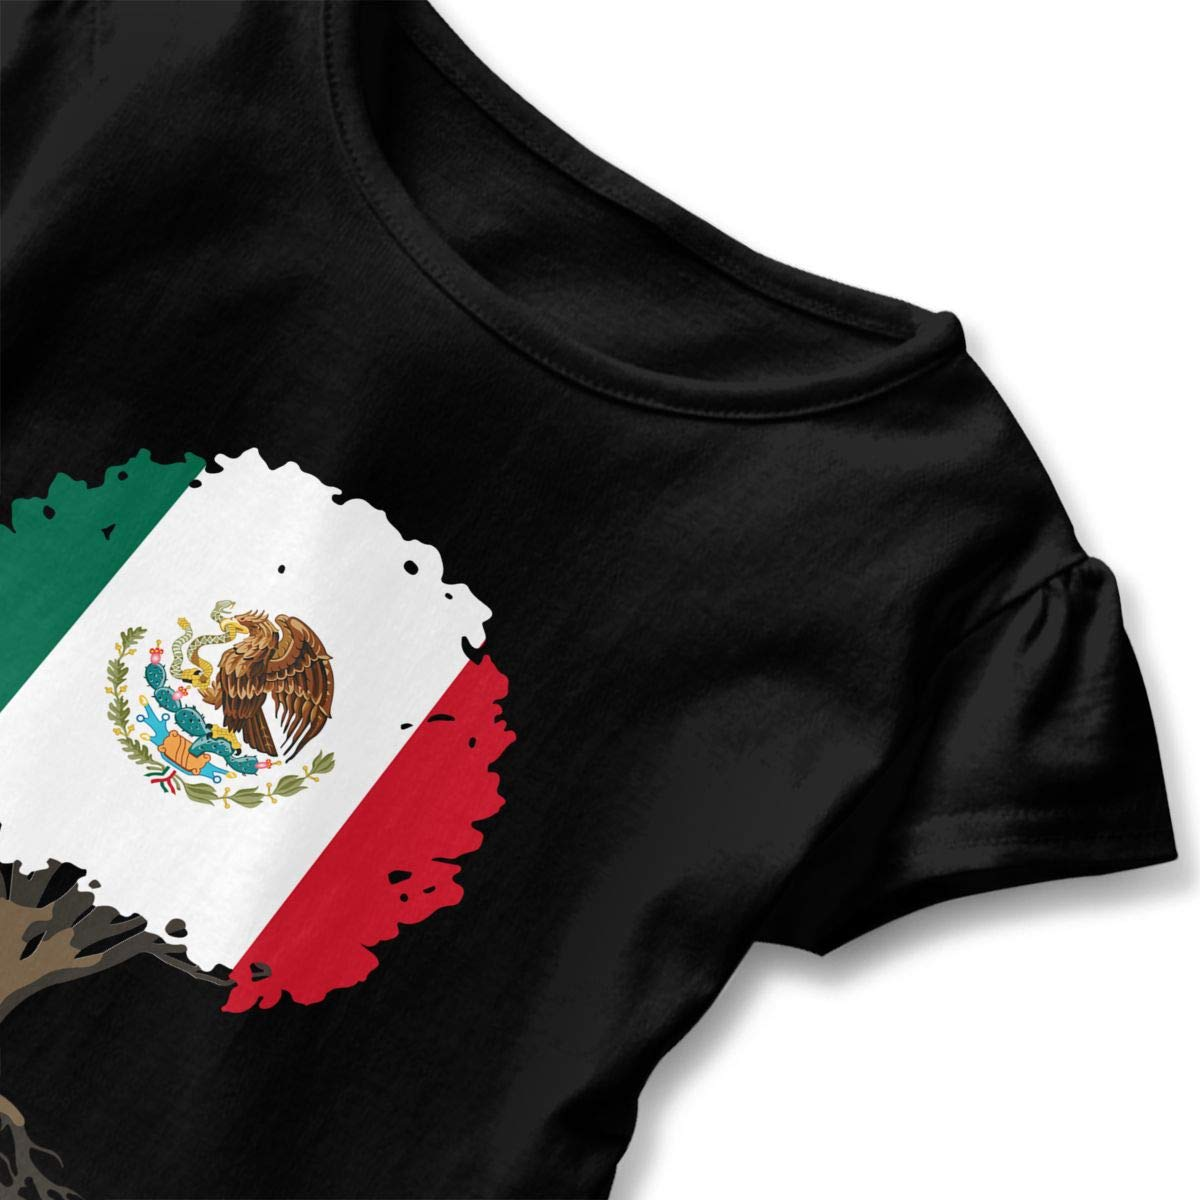 HYBDX9T Little Girls Tree of Life with Mexico Flag Funny Short Sleeve Cotton T Shirts Basic Tops Tee Clothes